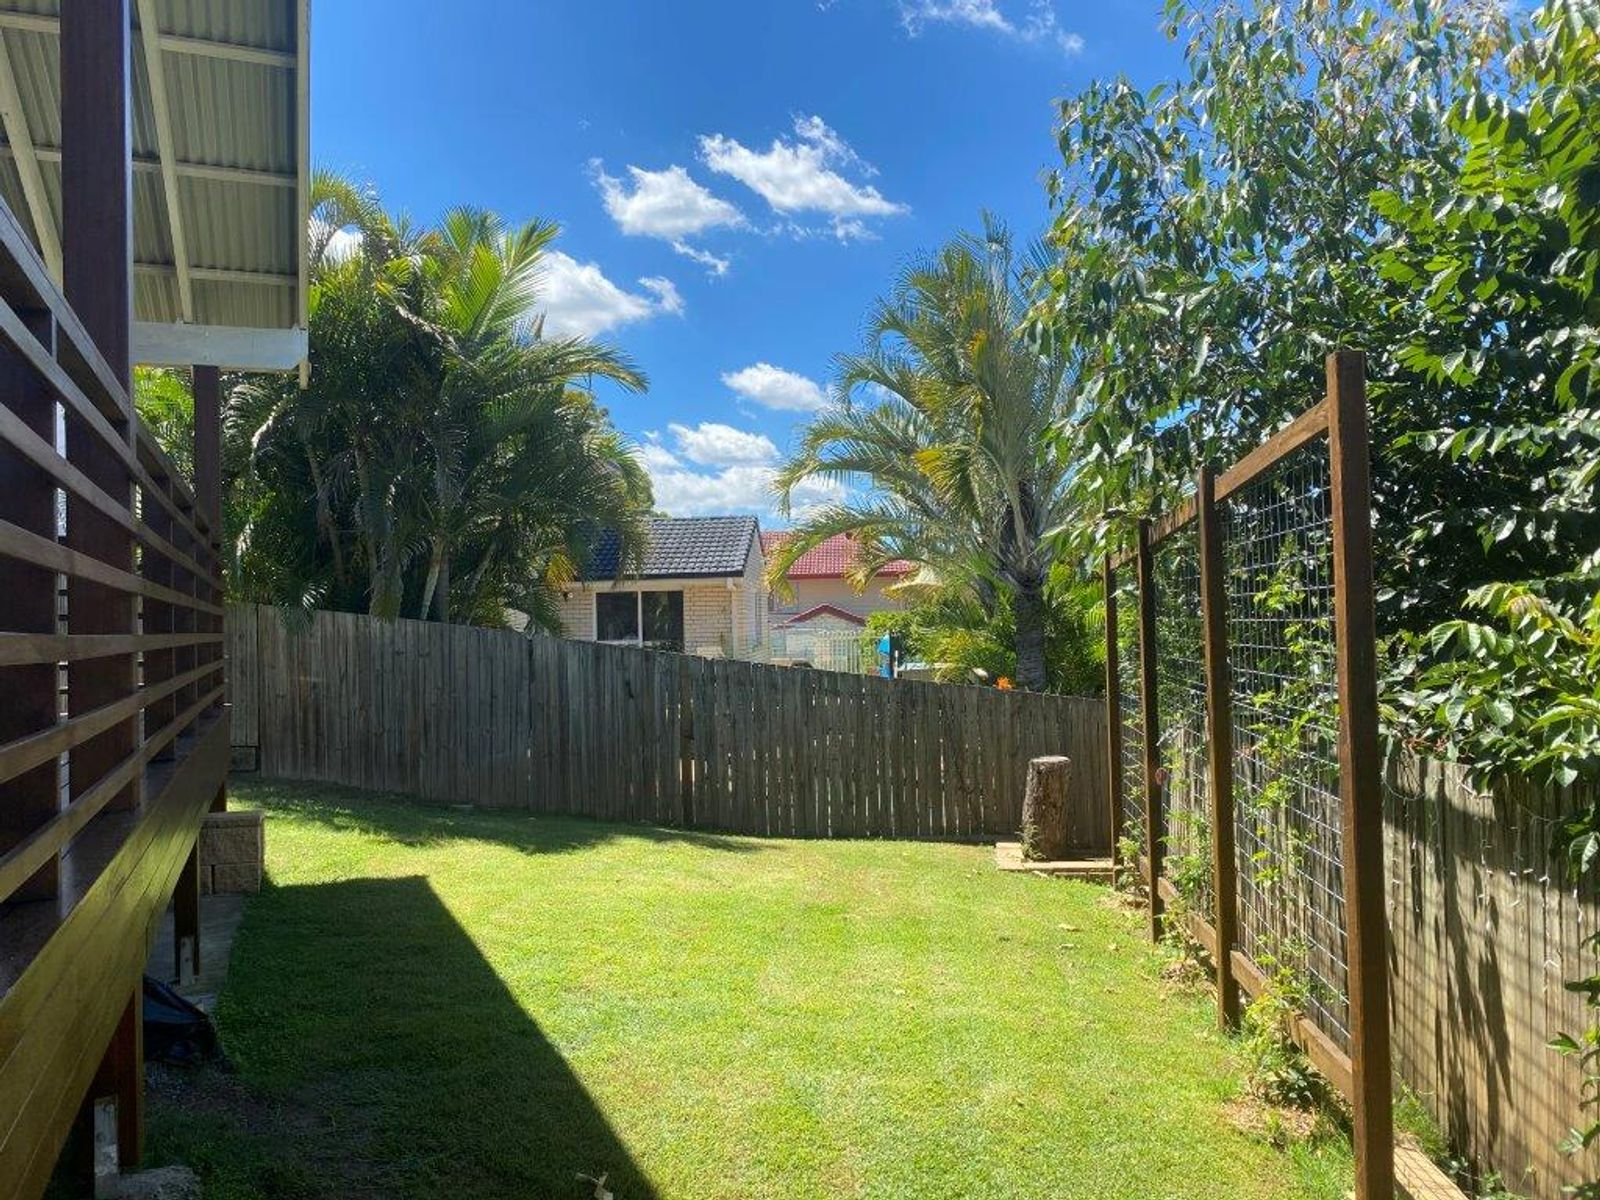 3 Danaher Drive, Rochedale South, QLD 4123